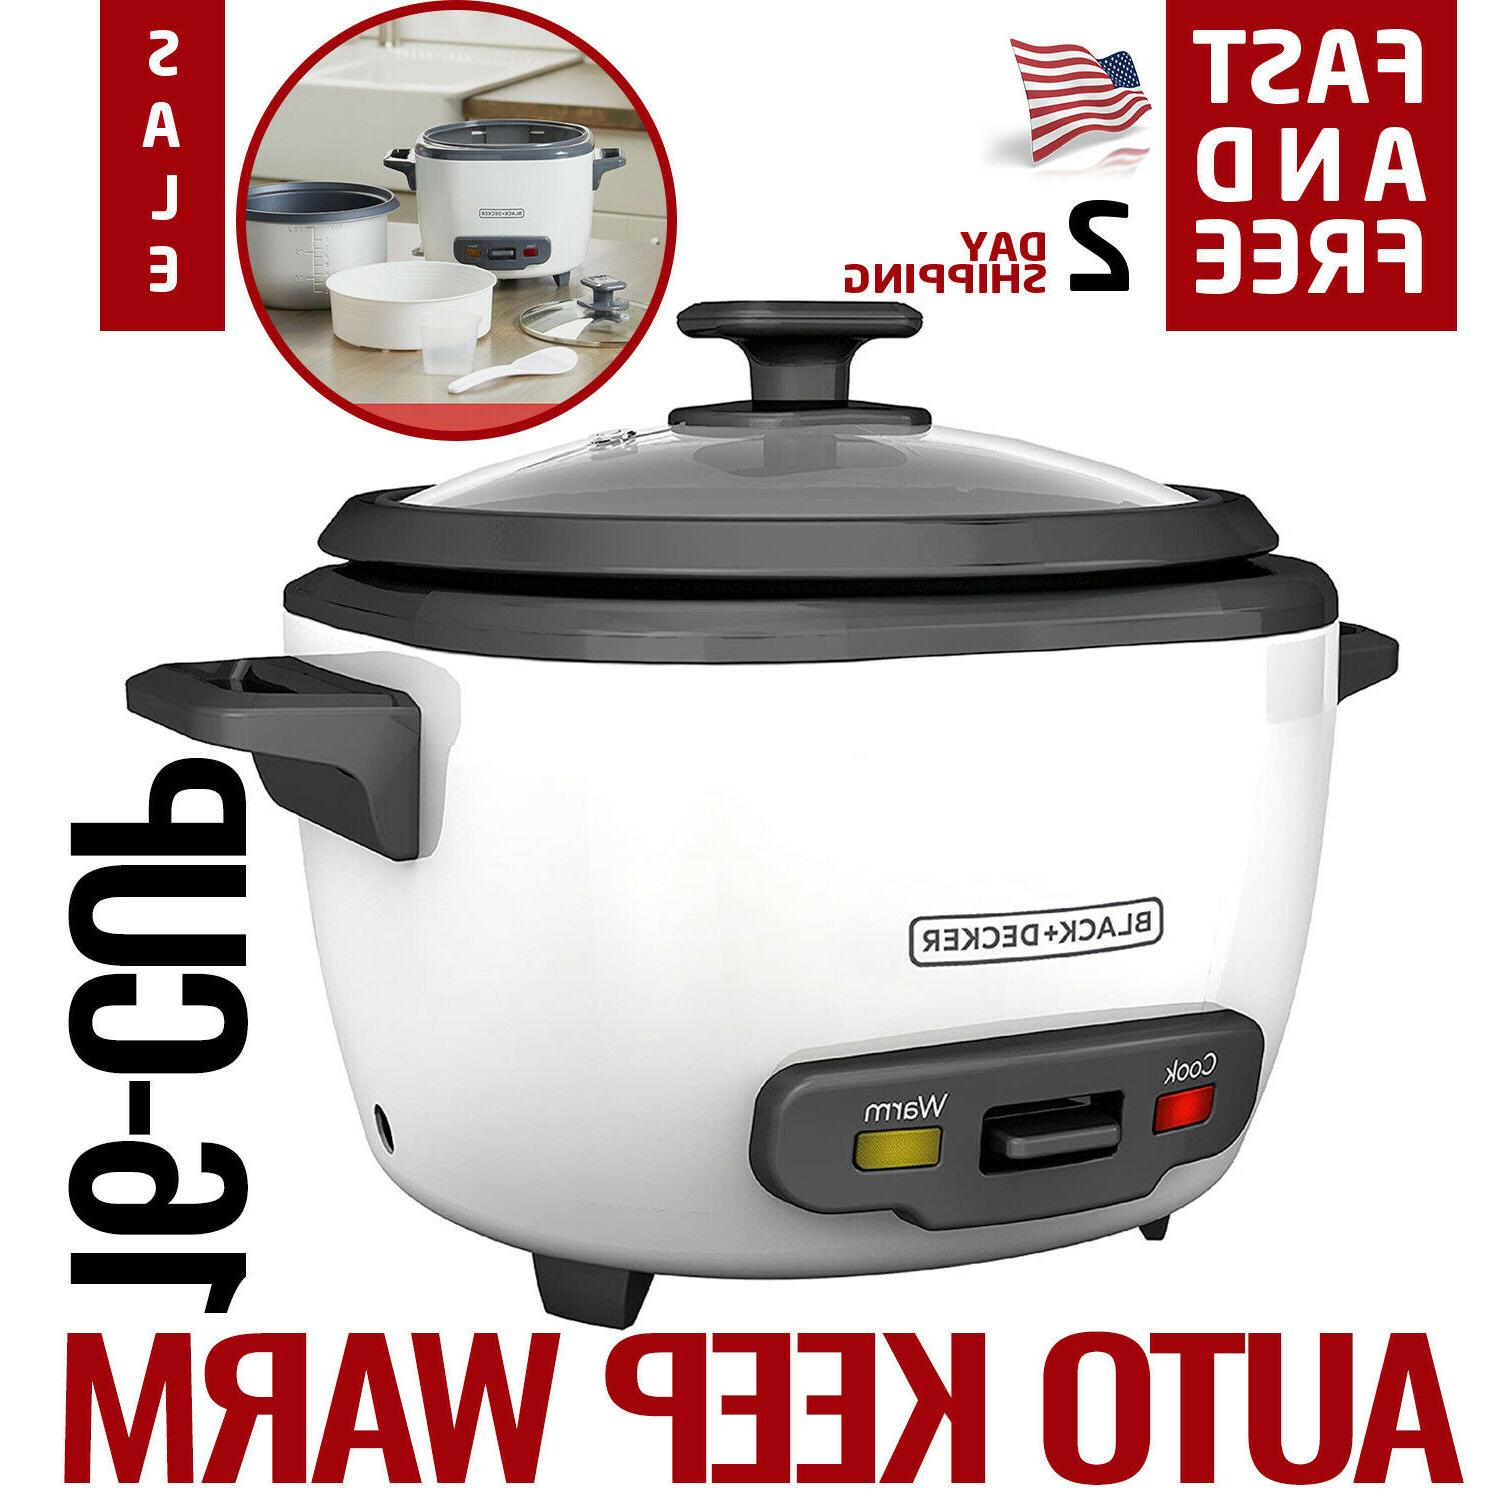 rice cooker electric food steamer 6 cup